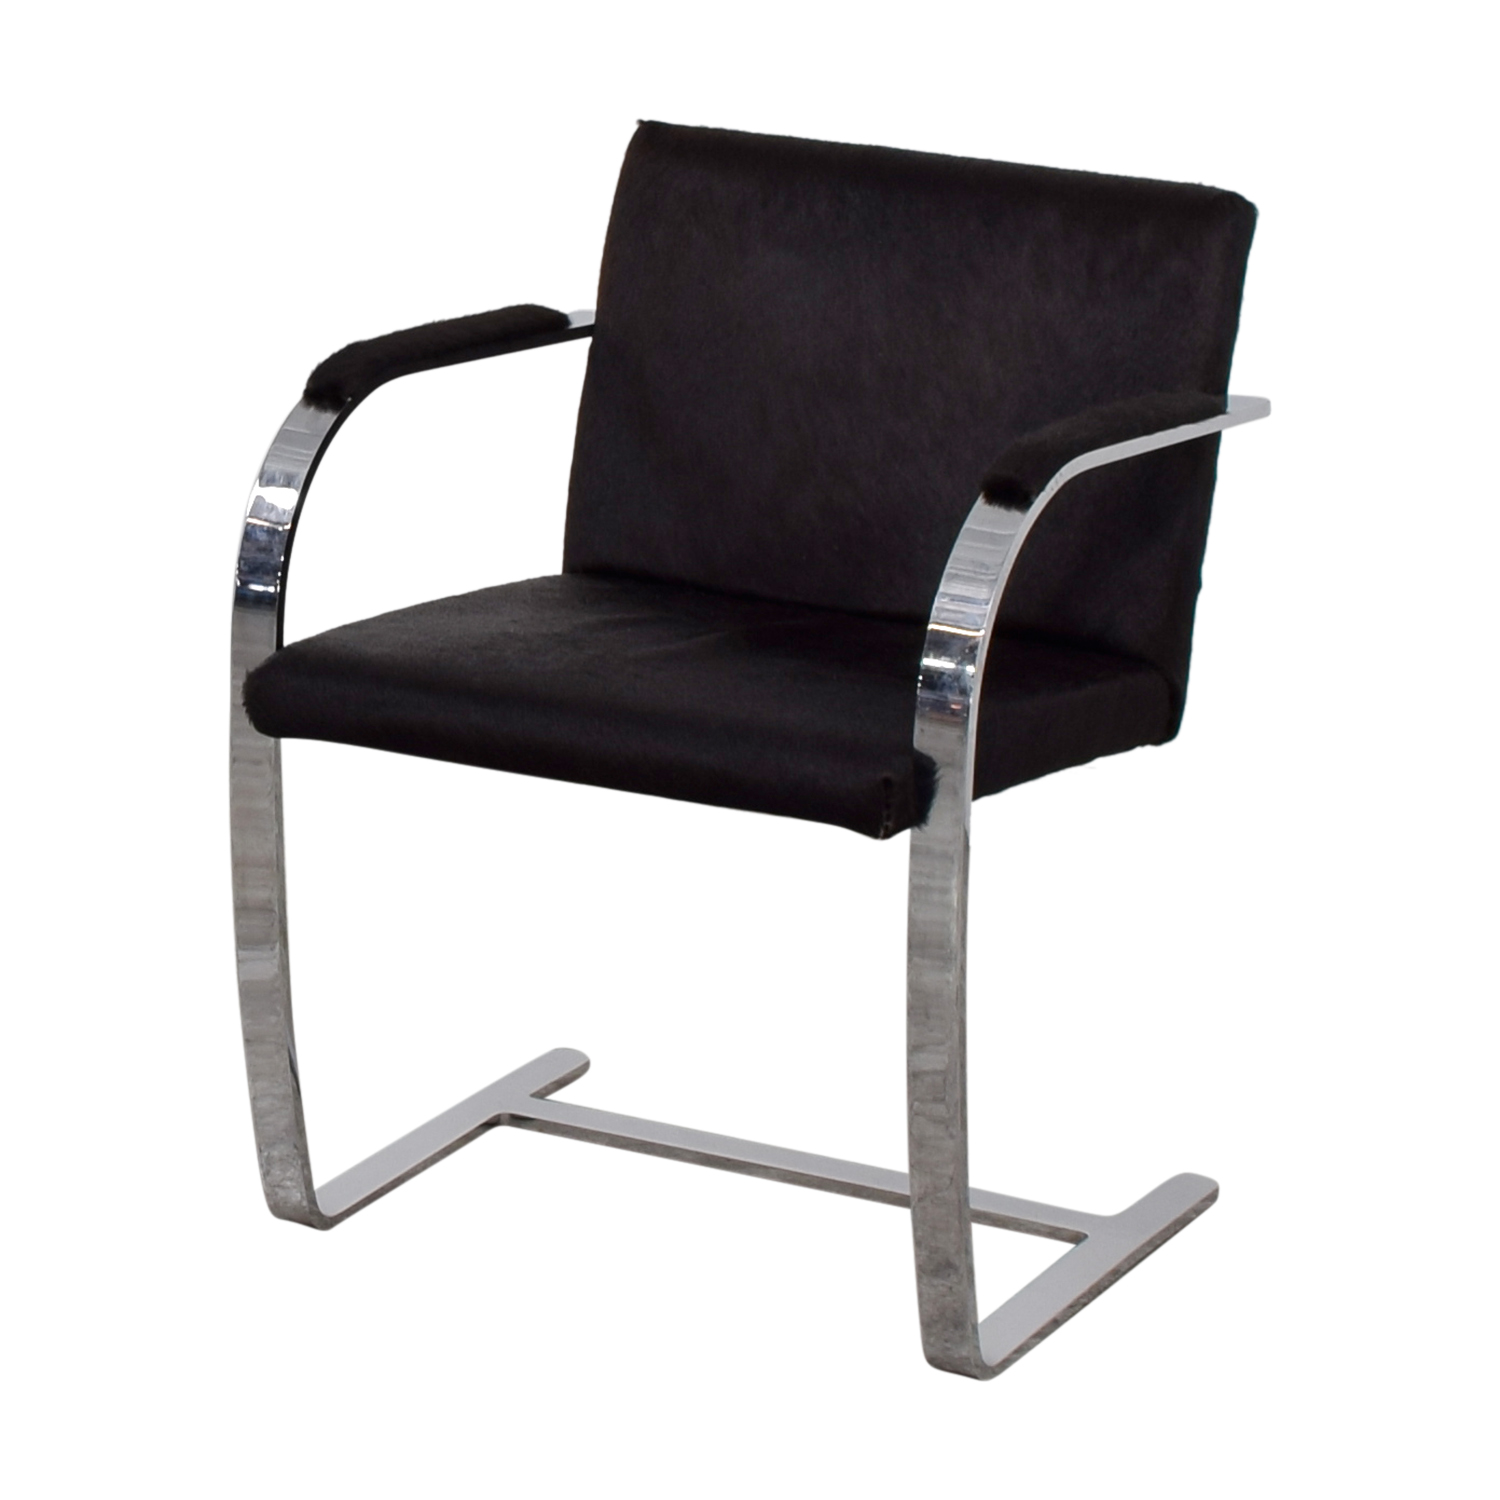 Soho Concept Furniture Soho Concept Furniture Black Pony Skin Accent Chair second hand